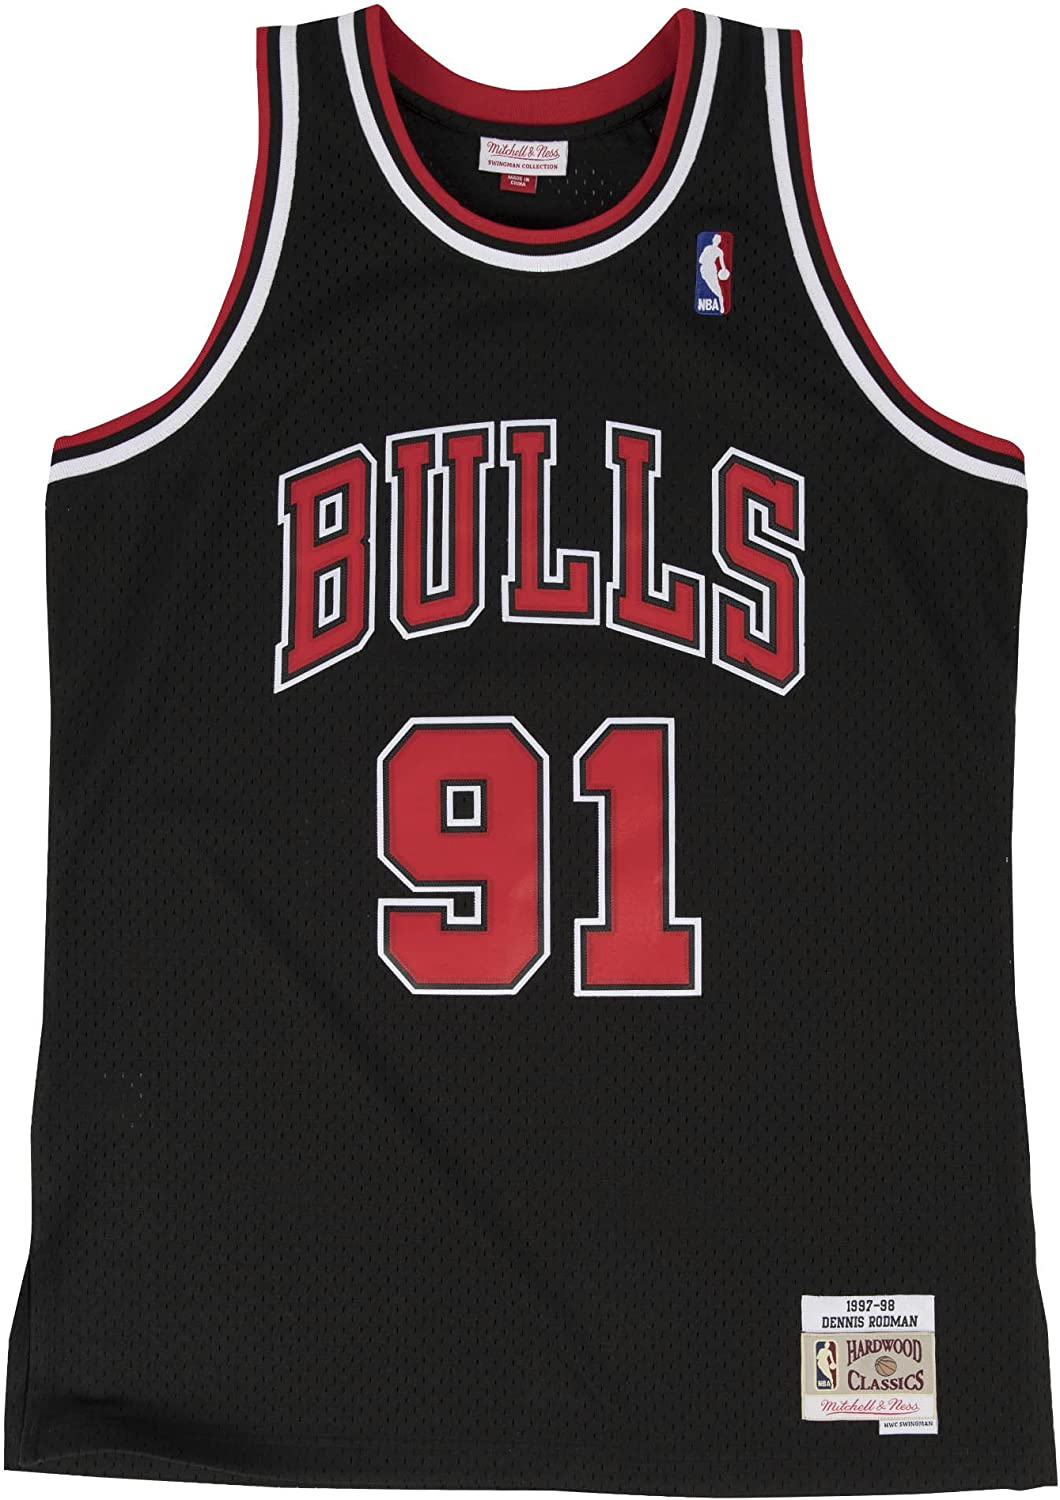 Amazon.com: Mitchell & Ness Dennis Rodman Chicago Bulls NBA ...